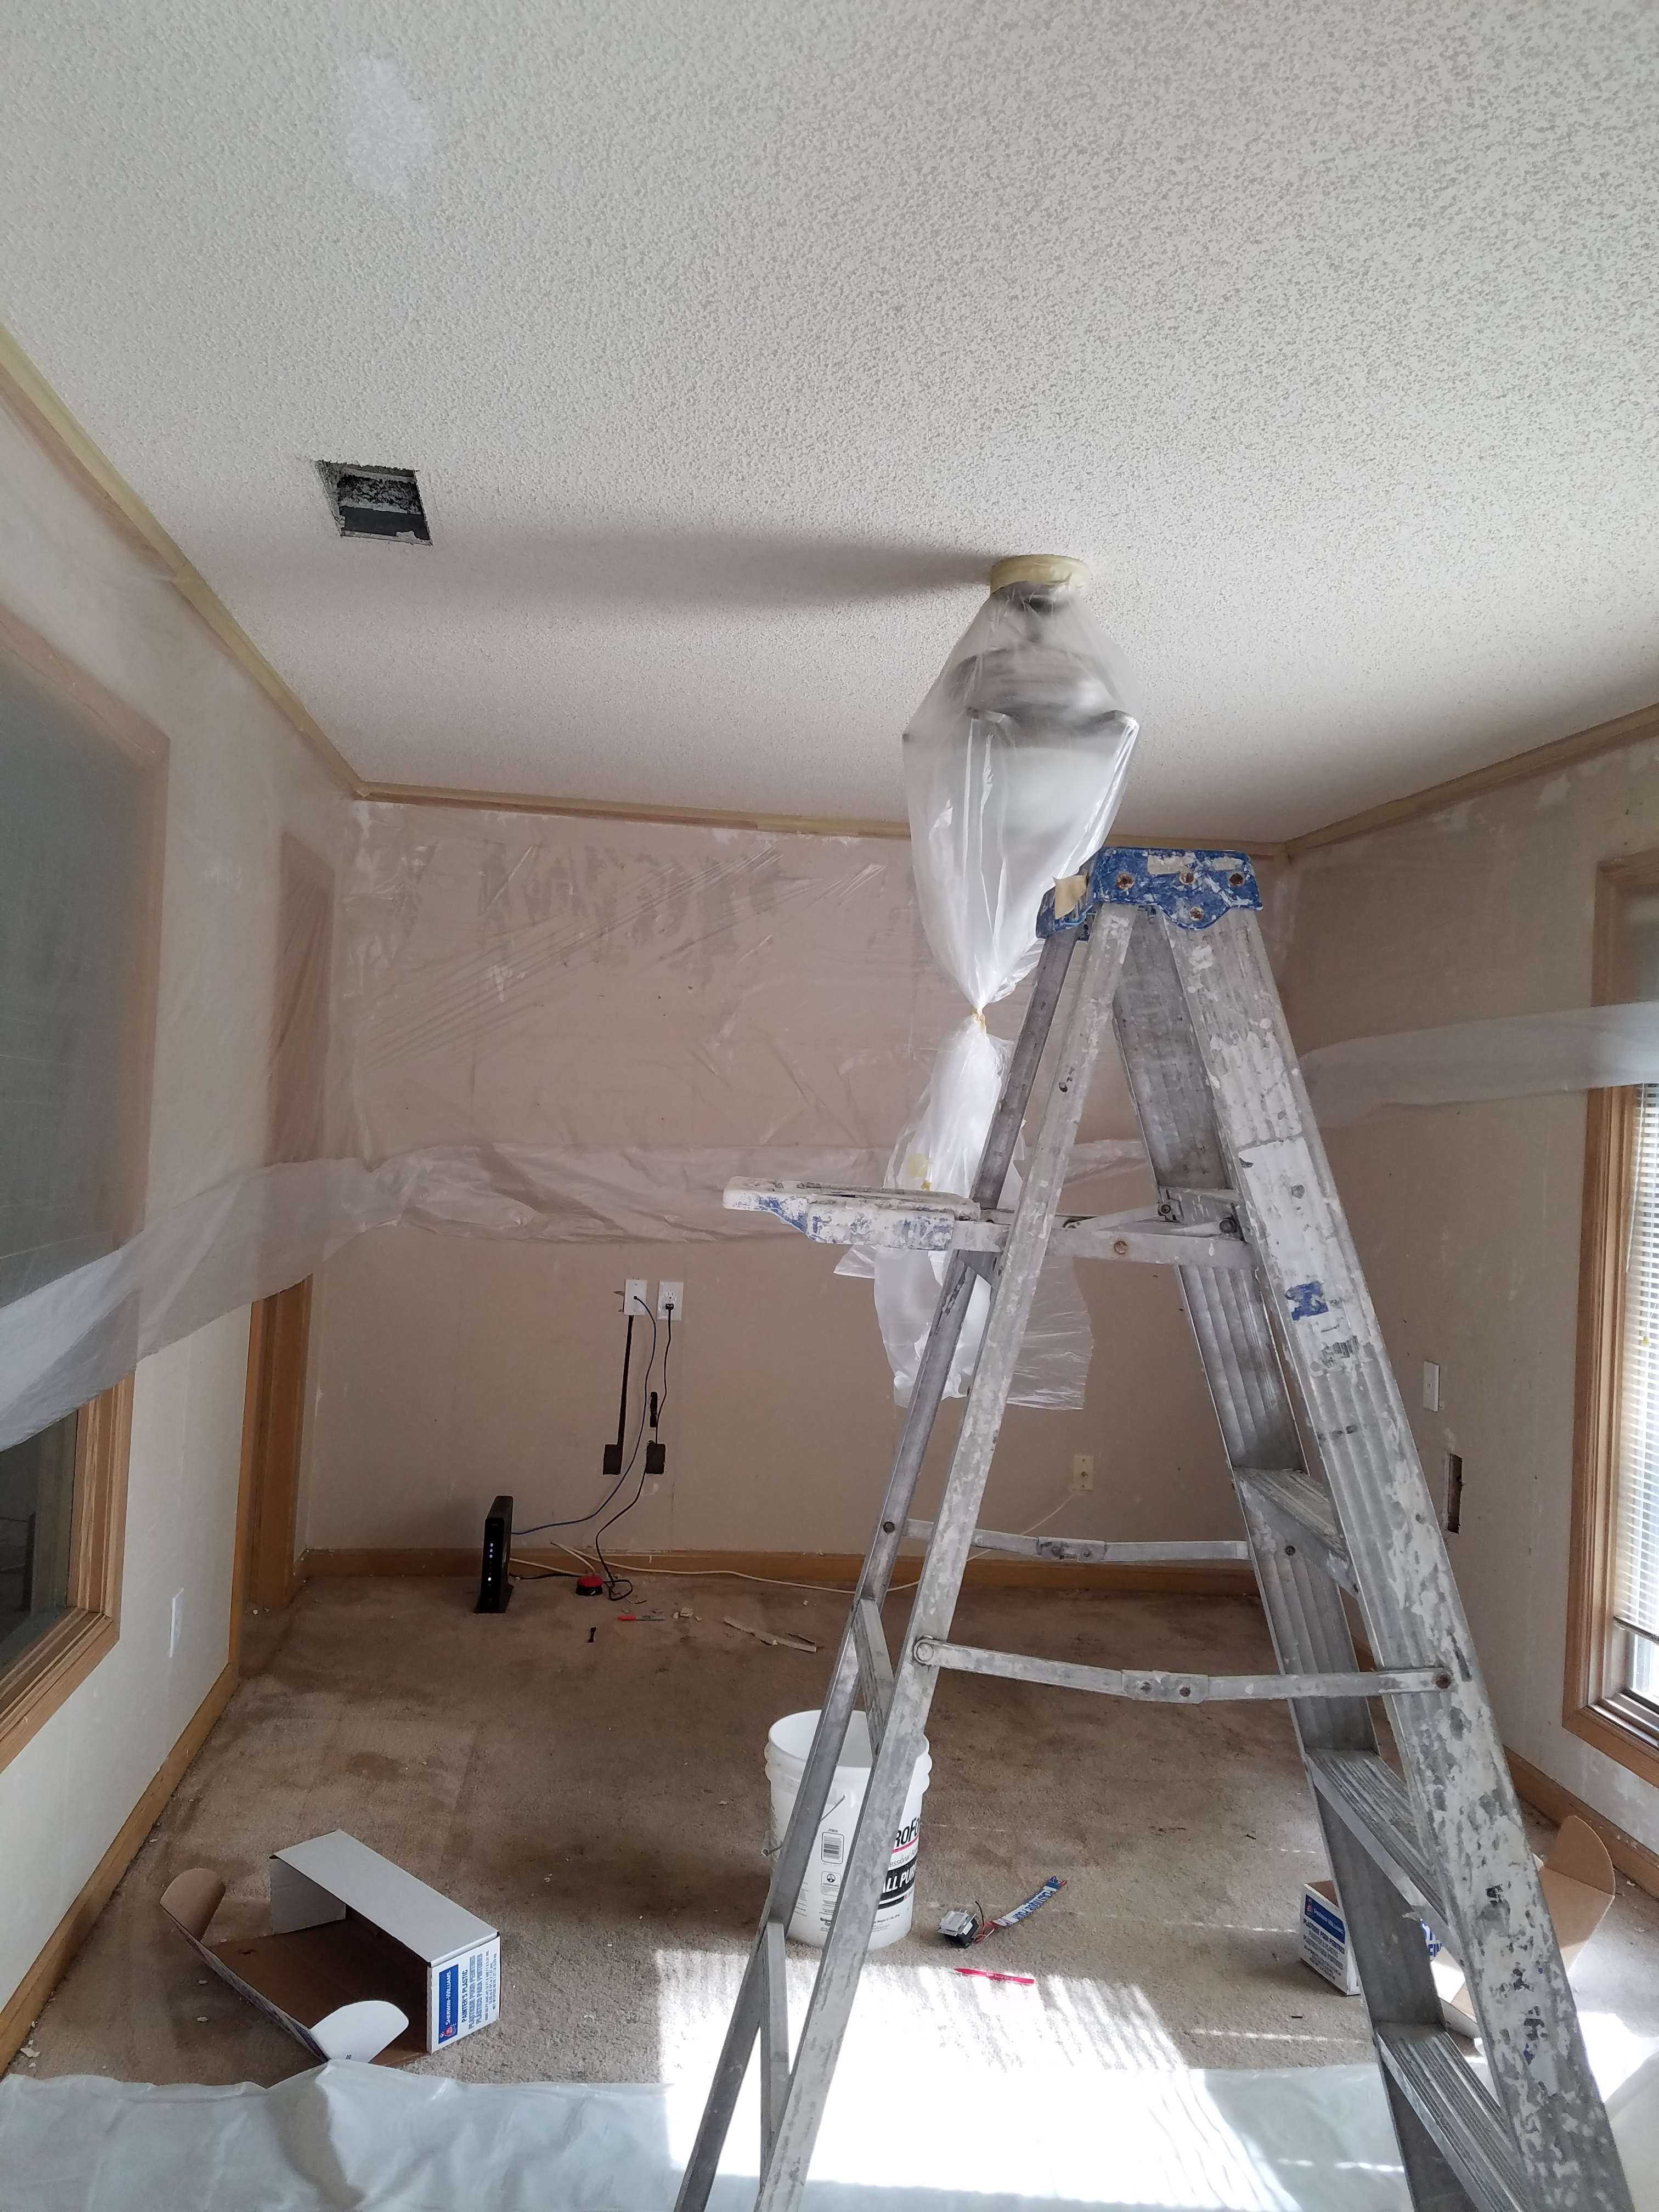 gs removal projects sprayed ceiling ricky ceilings popcorn knockdown and handyman img